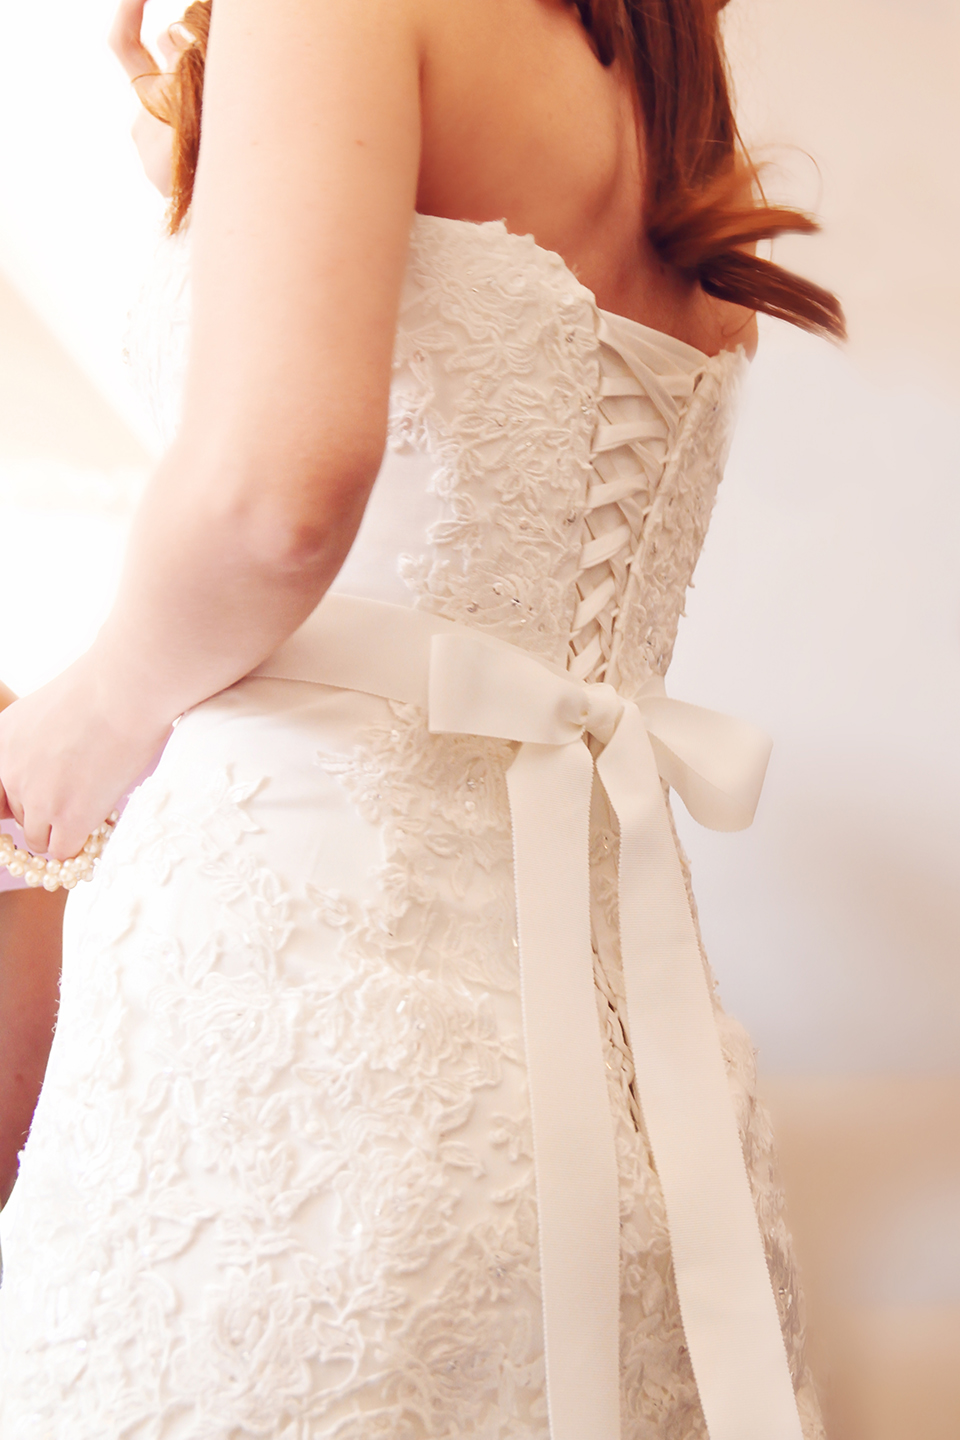 For her wedding at Bassmead Manor Barns the bride wore a white bridal gown with a corset back